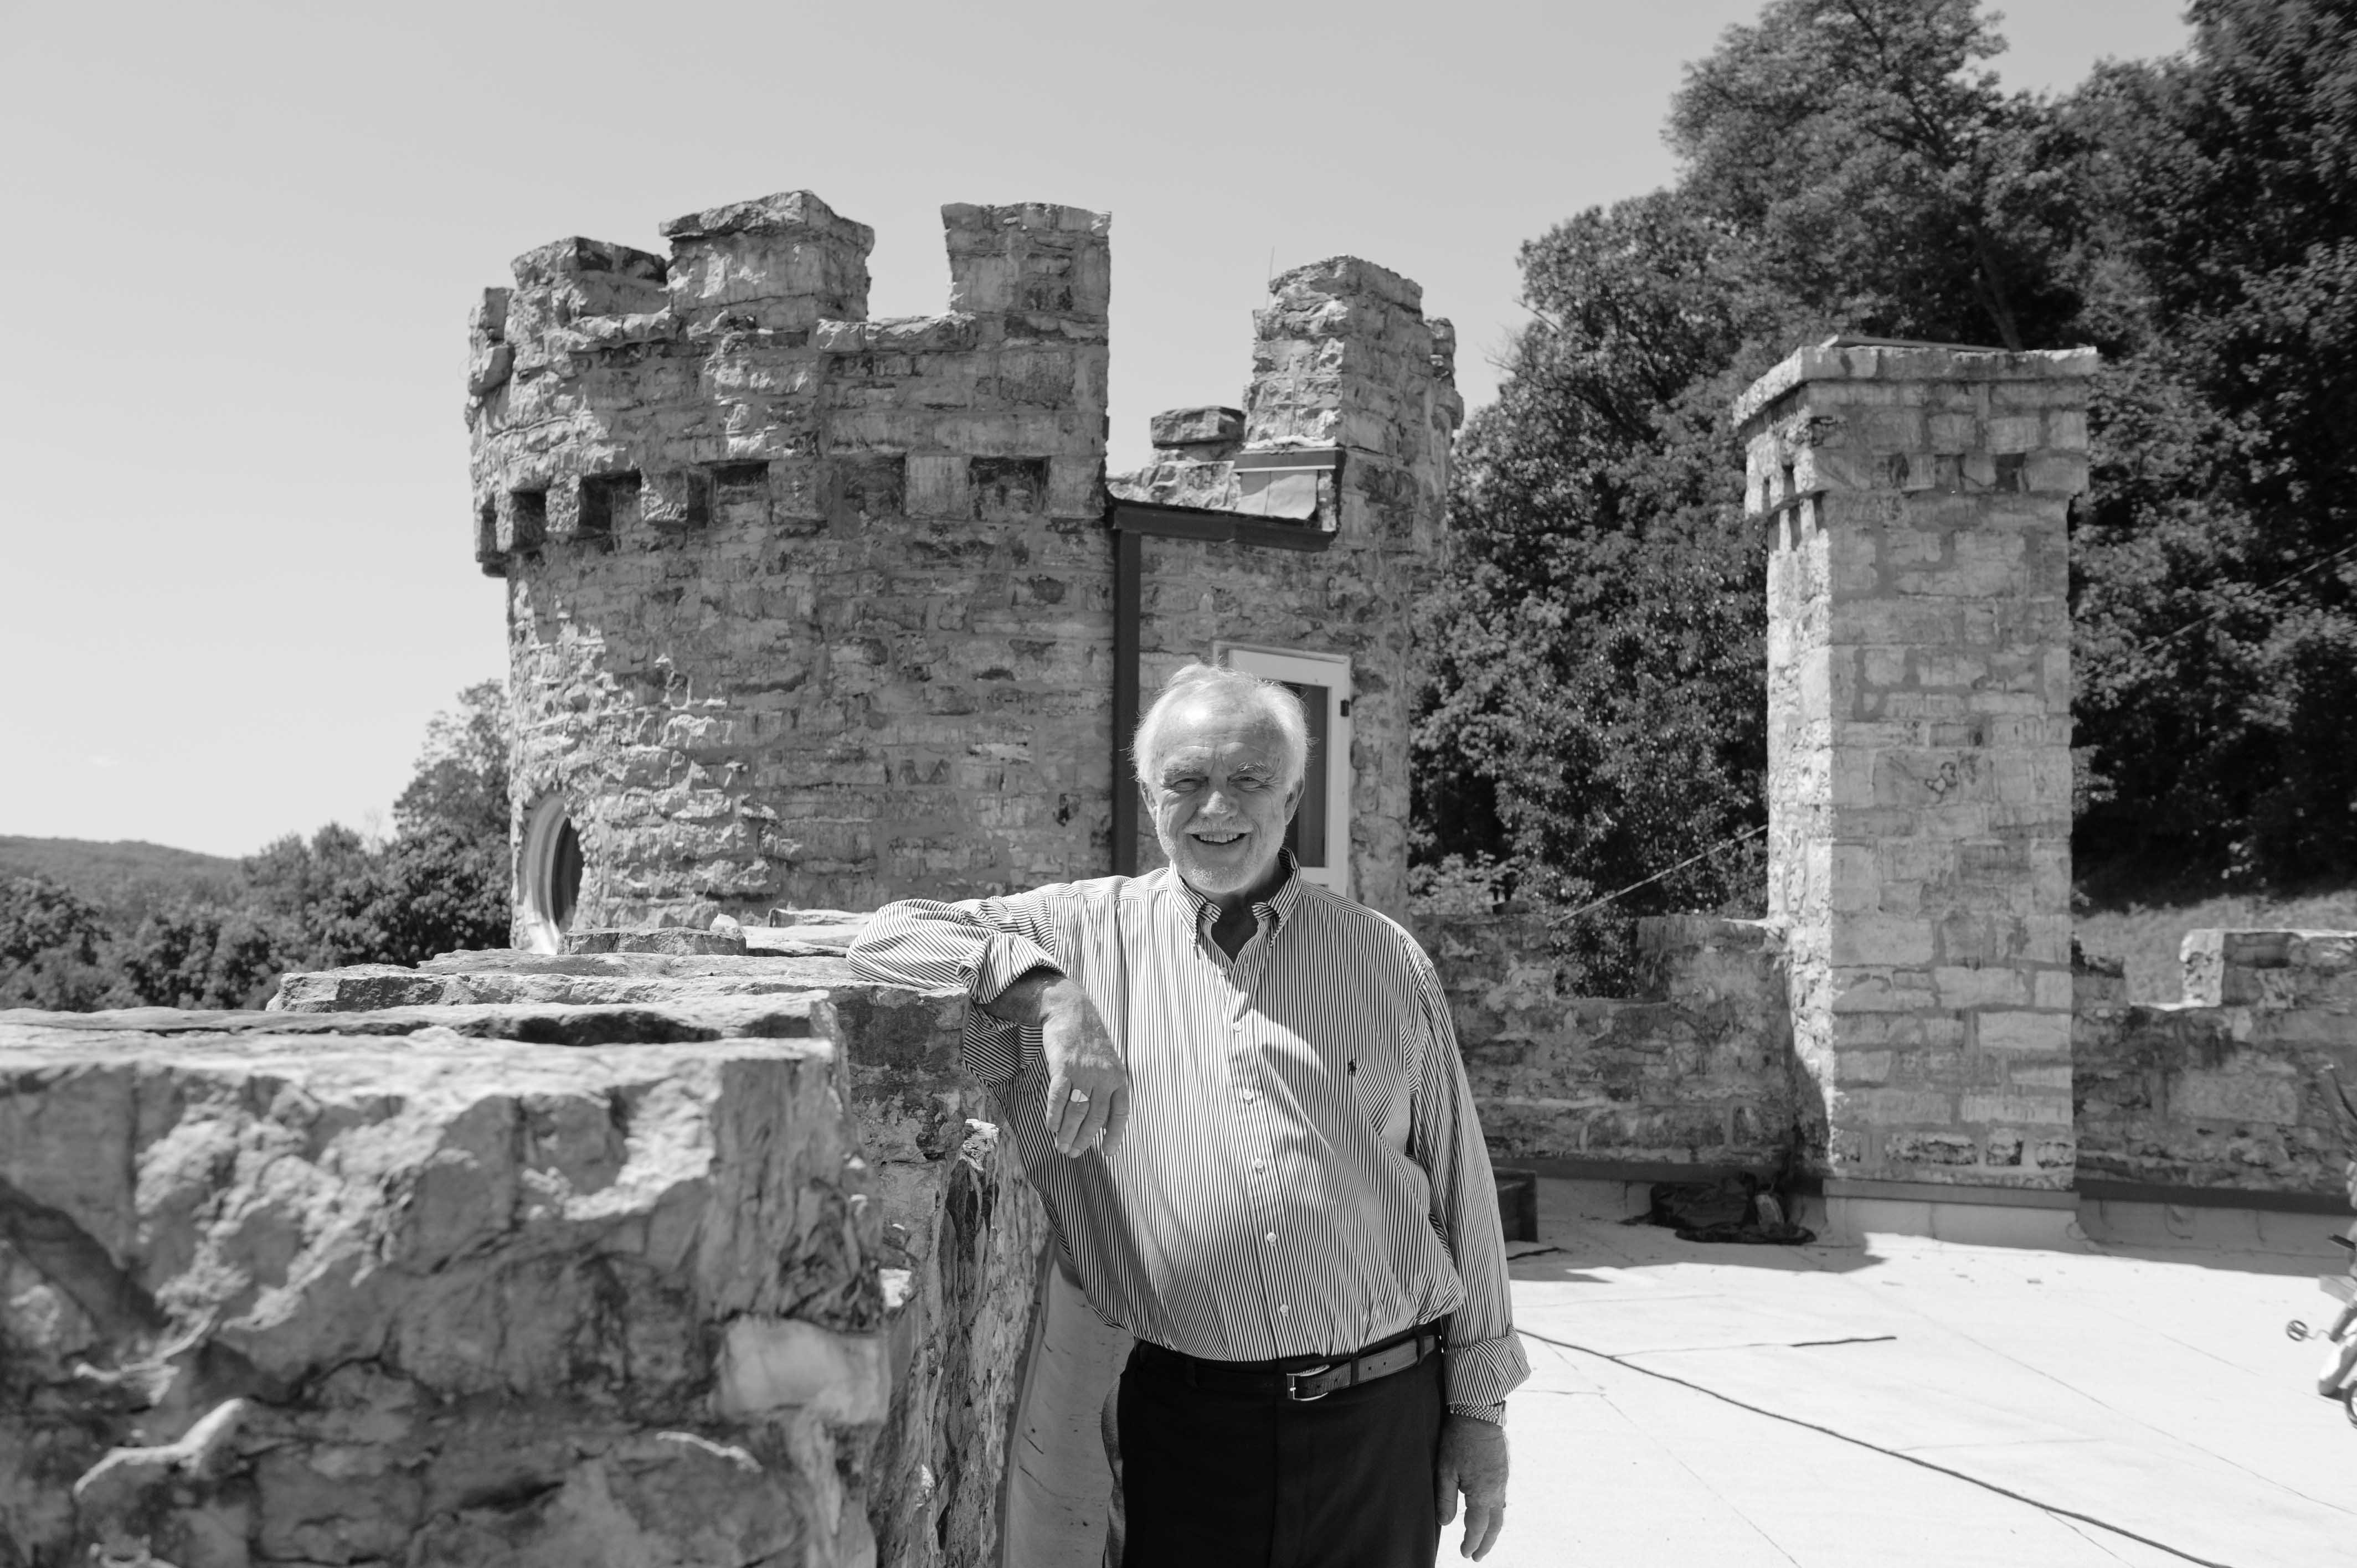 Andrew Gosline, one of the most recent owners, standing on the roof of the castle